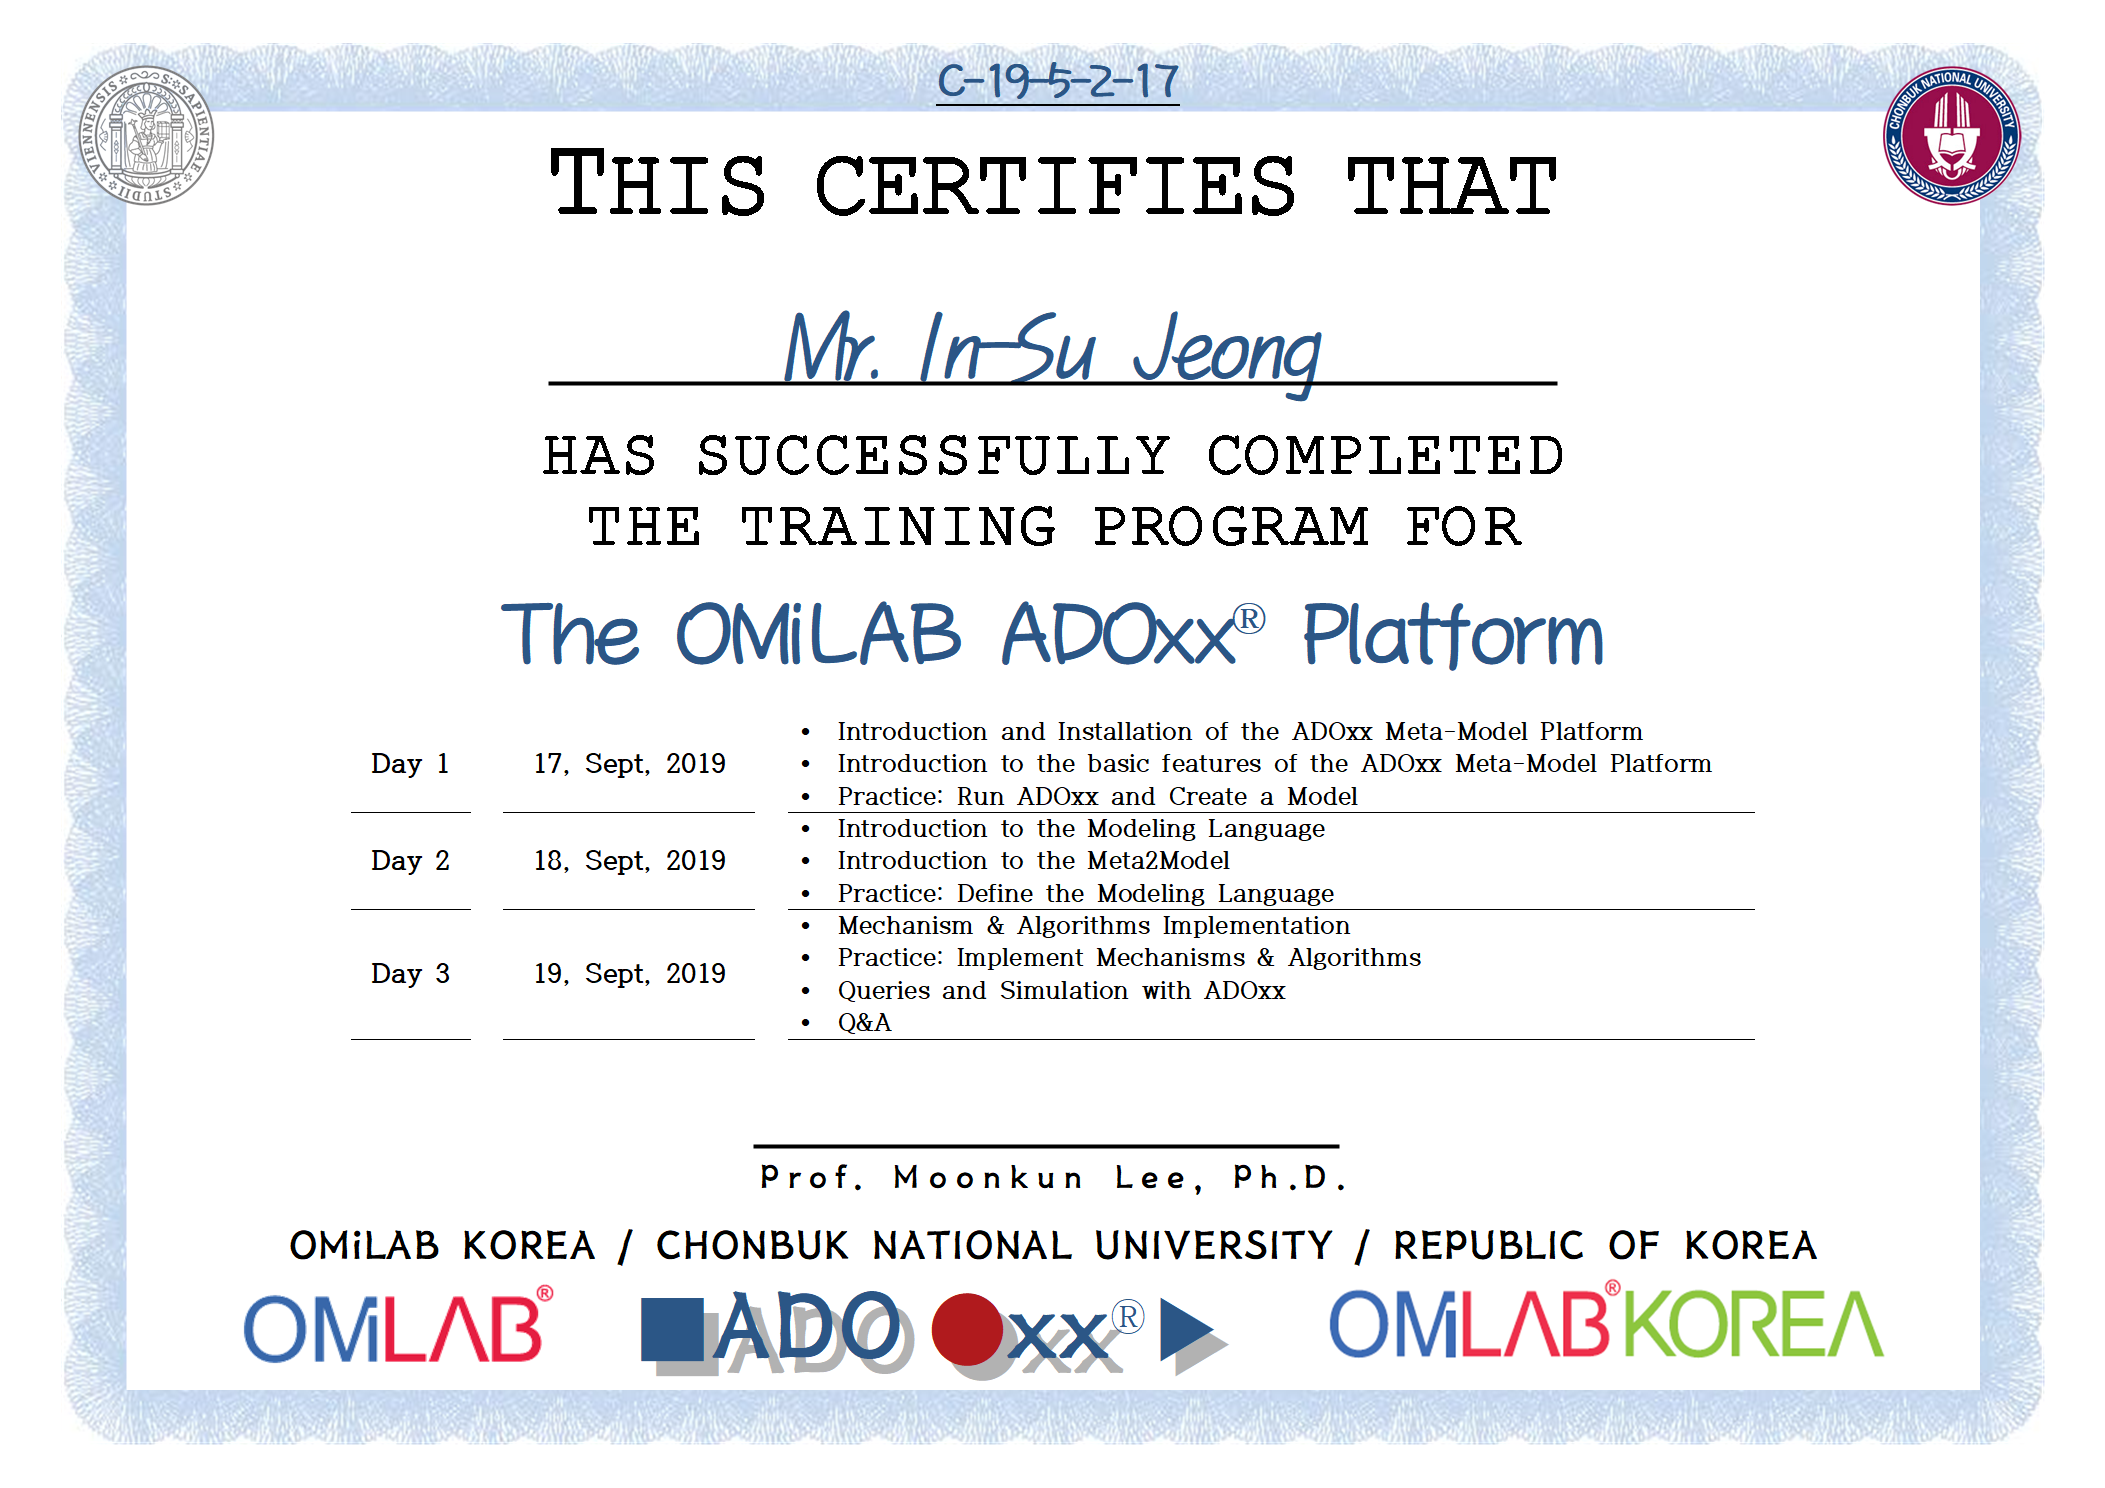 17. [CBNU-U] Mr. In-Su Jeong - 정인수 - 2019 제 5차 ADOxx Training 수료증-f.png